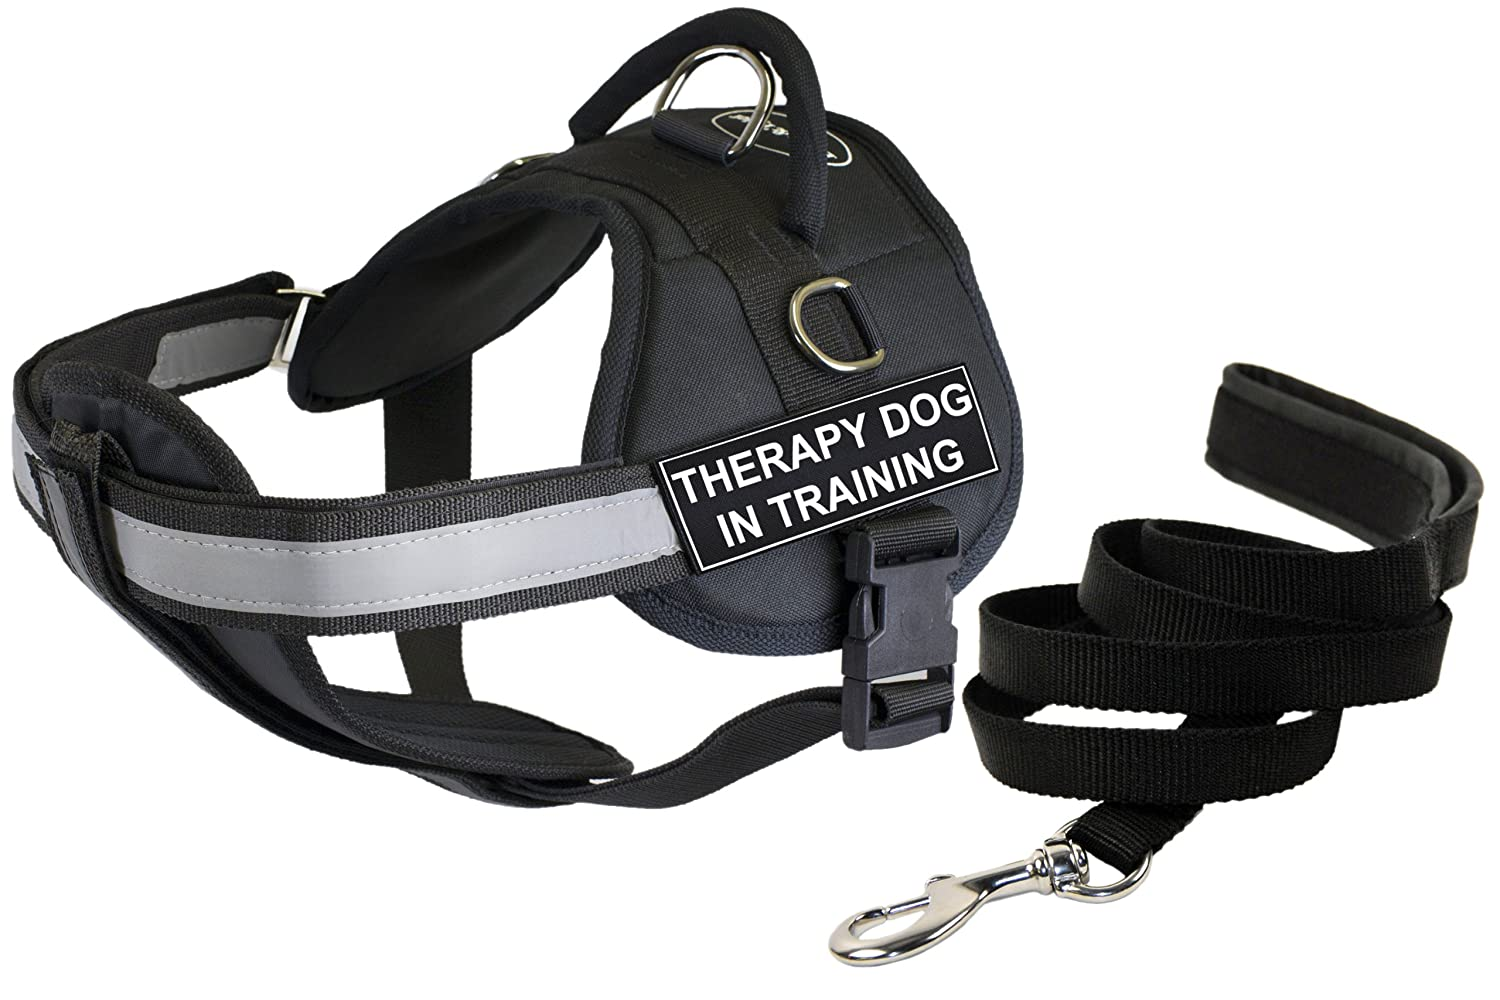 Dean & Tyler 25 by 34-Inch Therapy Dog in Training Pet Harness with Padded Puppy Leash, Small